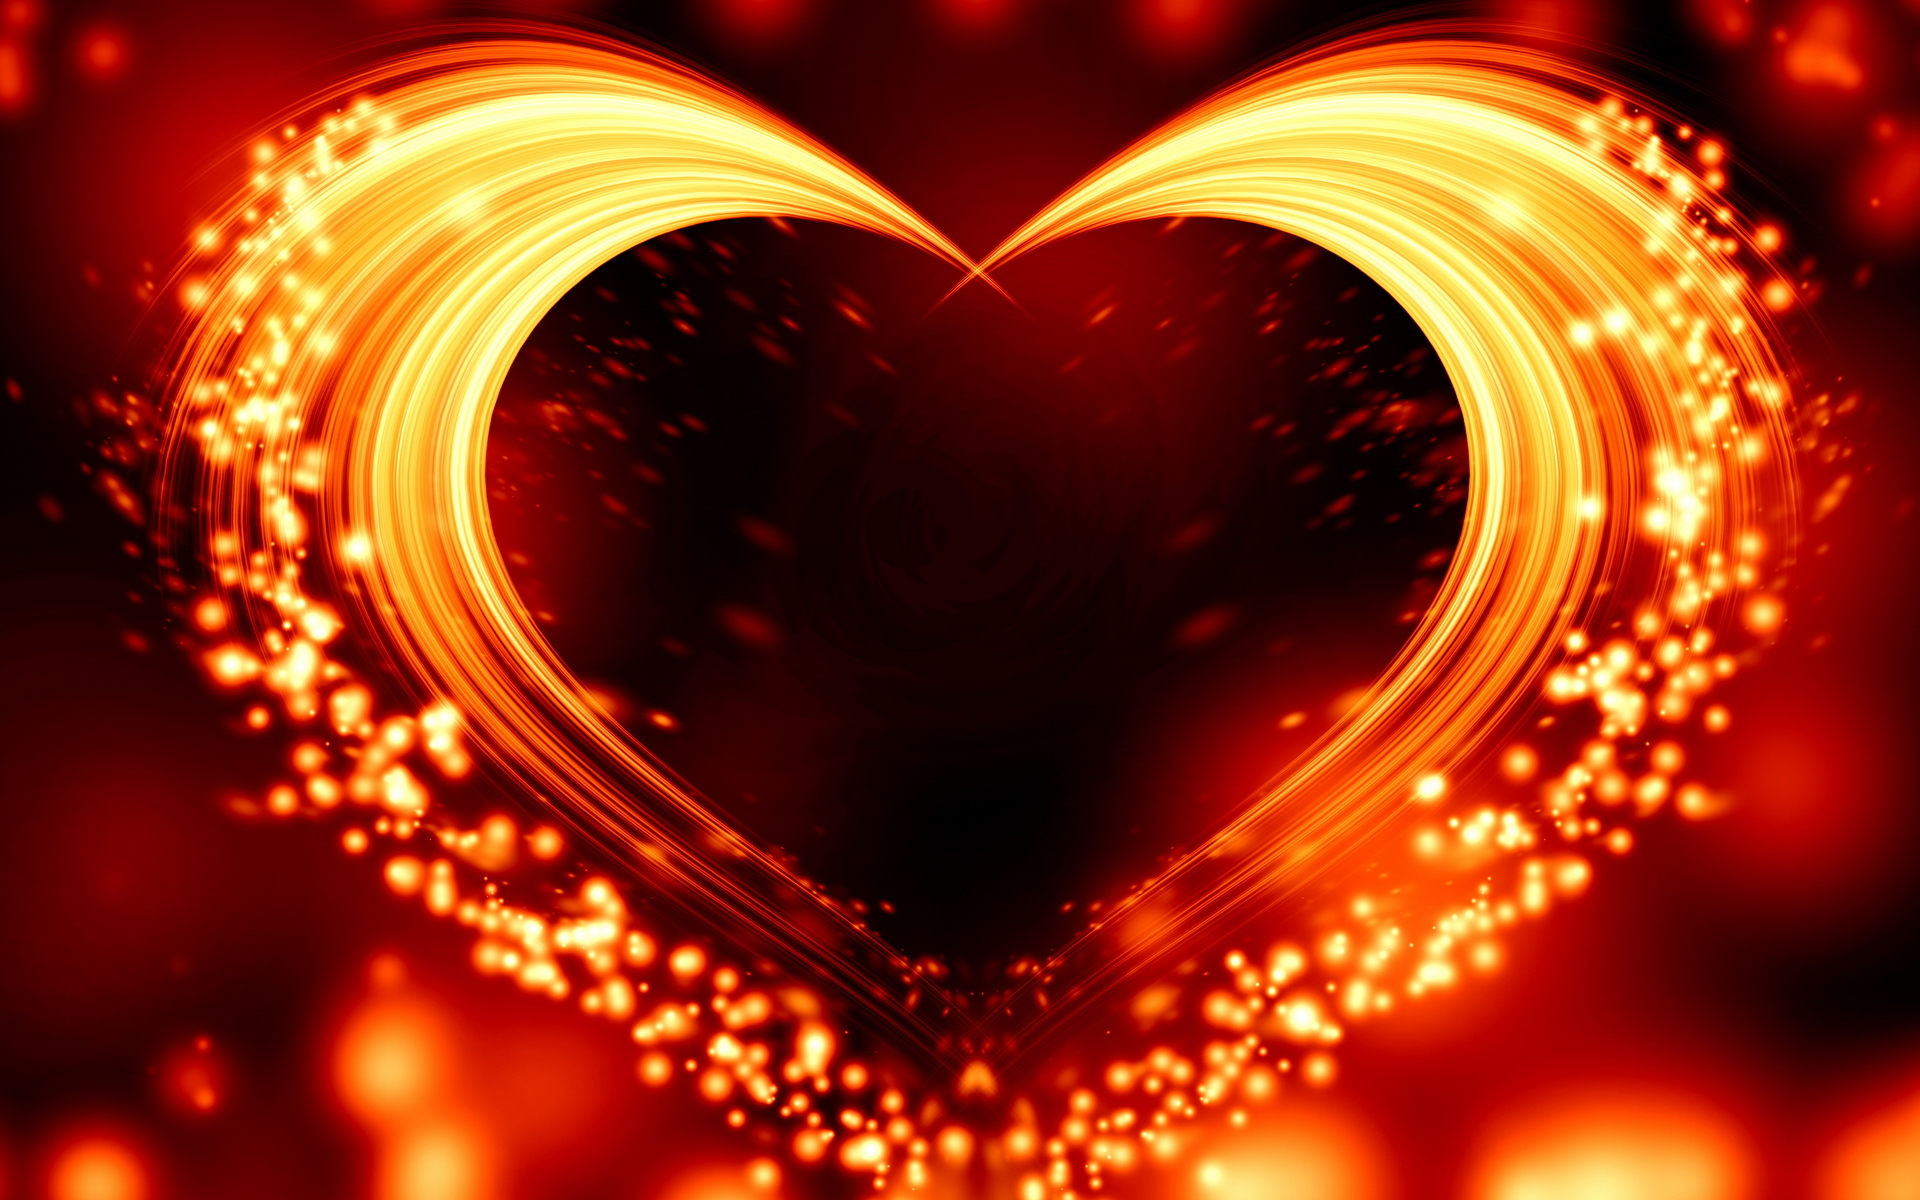 42993 Wallpapers and Background images on your desktop. Download Background, Hearts pictures on PC for free